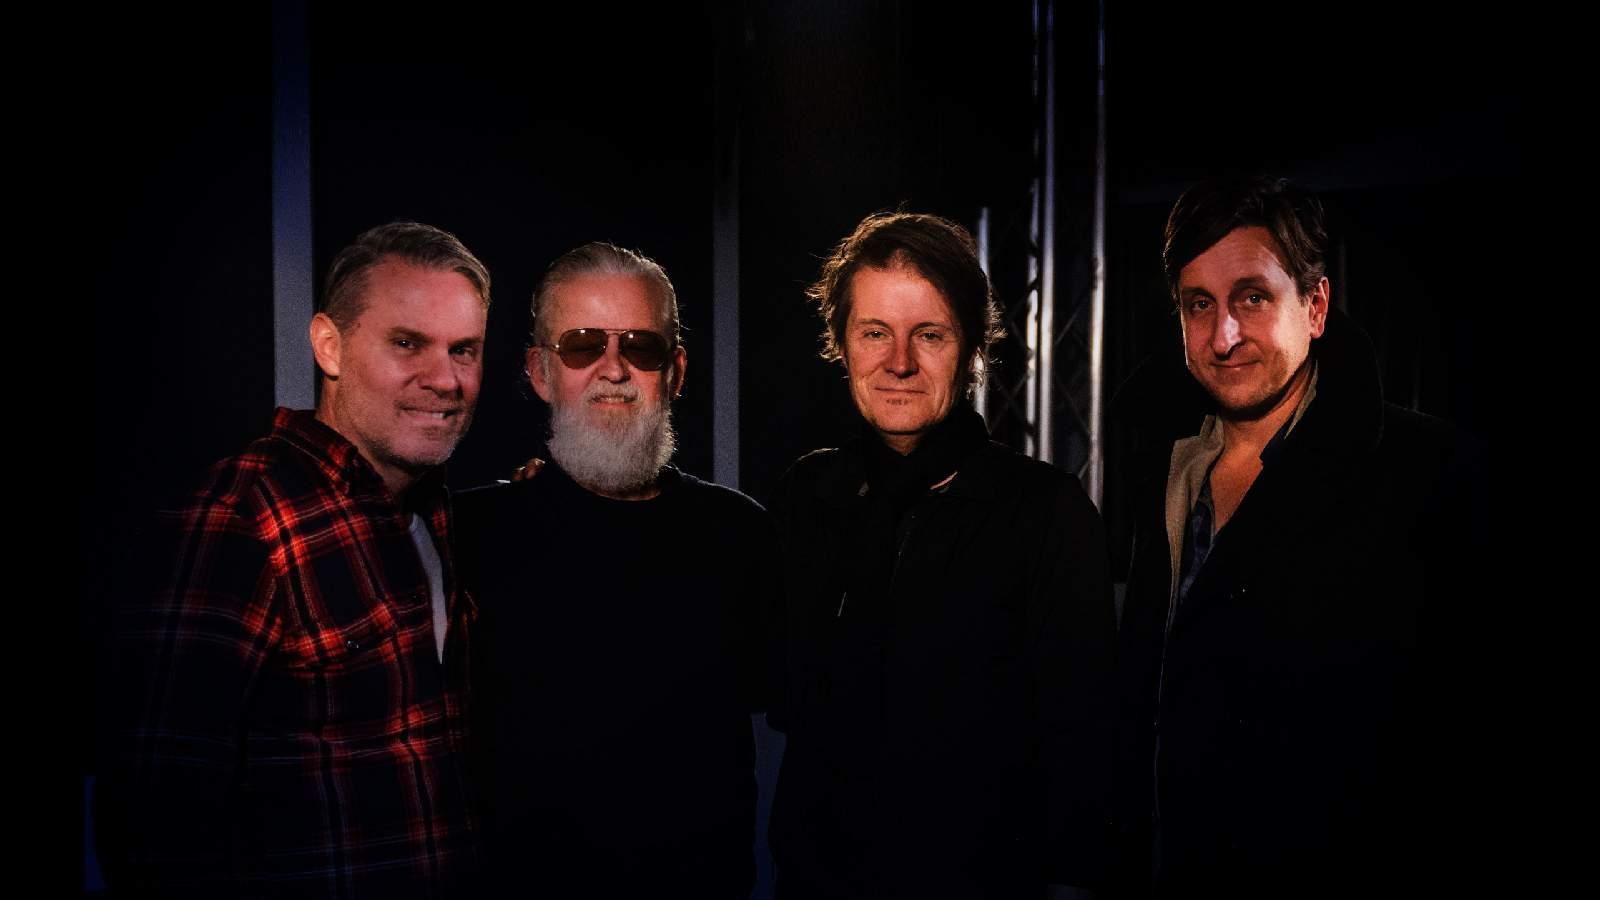 Blue Rodeo (Rescheduled from 4/4/2020, 11/28/2020)